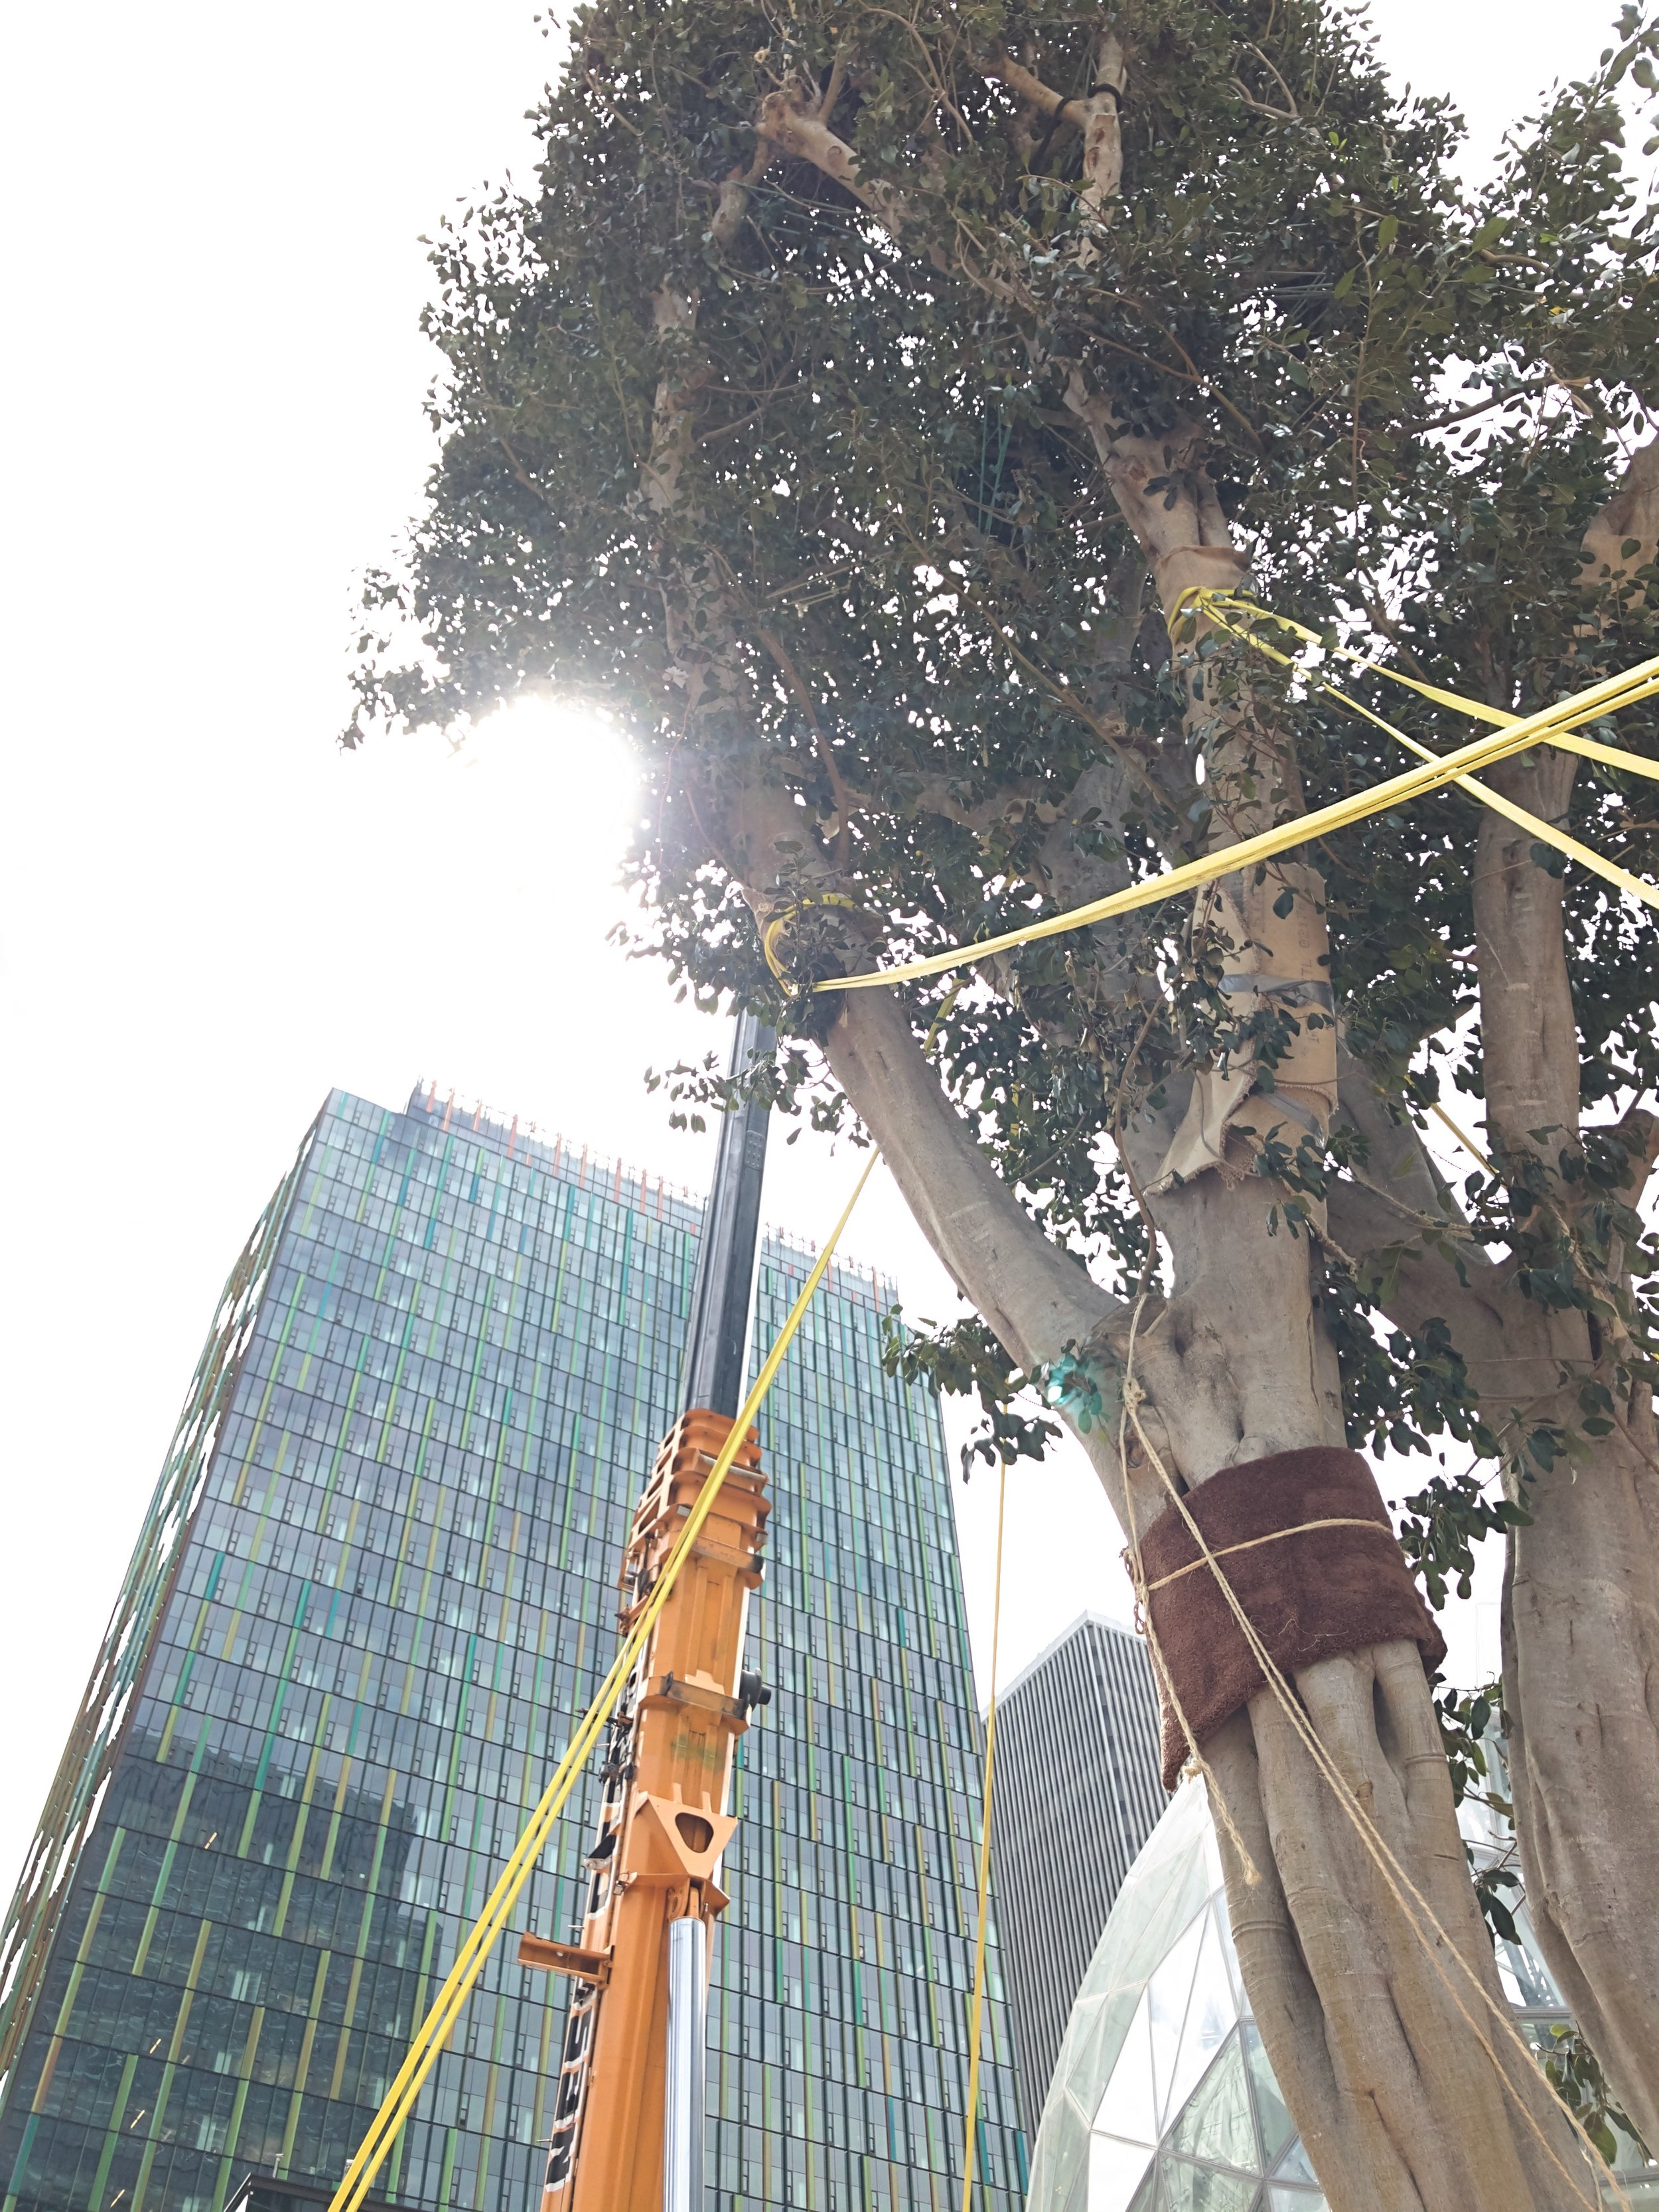 Amazon brings a 55-foot tree into its Spheres just two blocks from SVC.